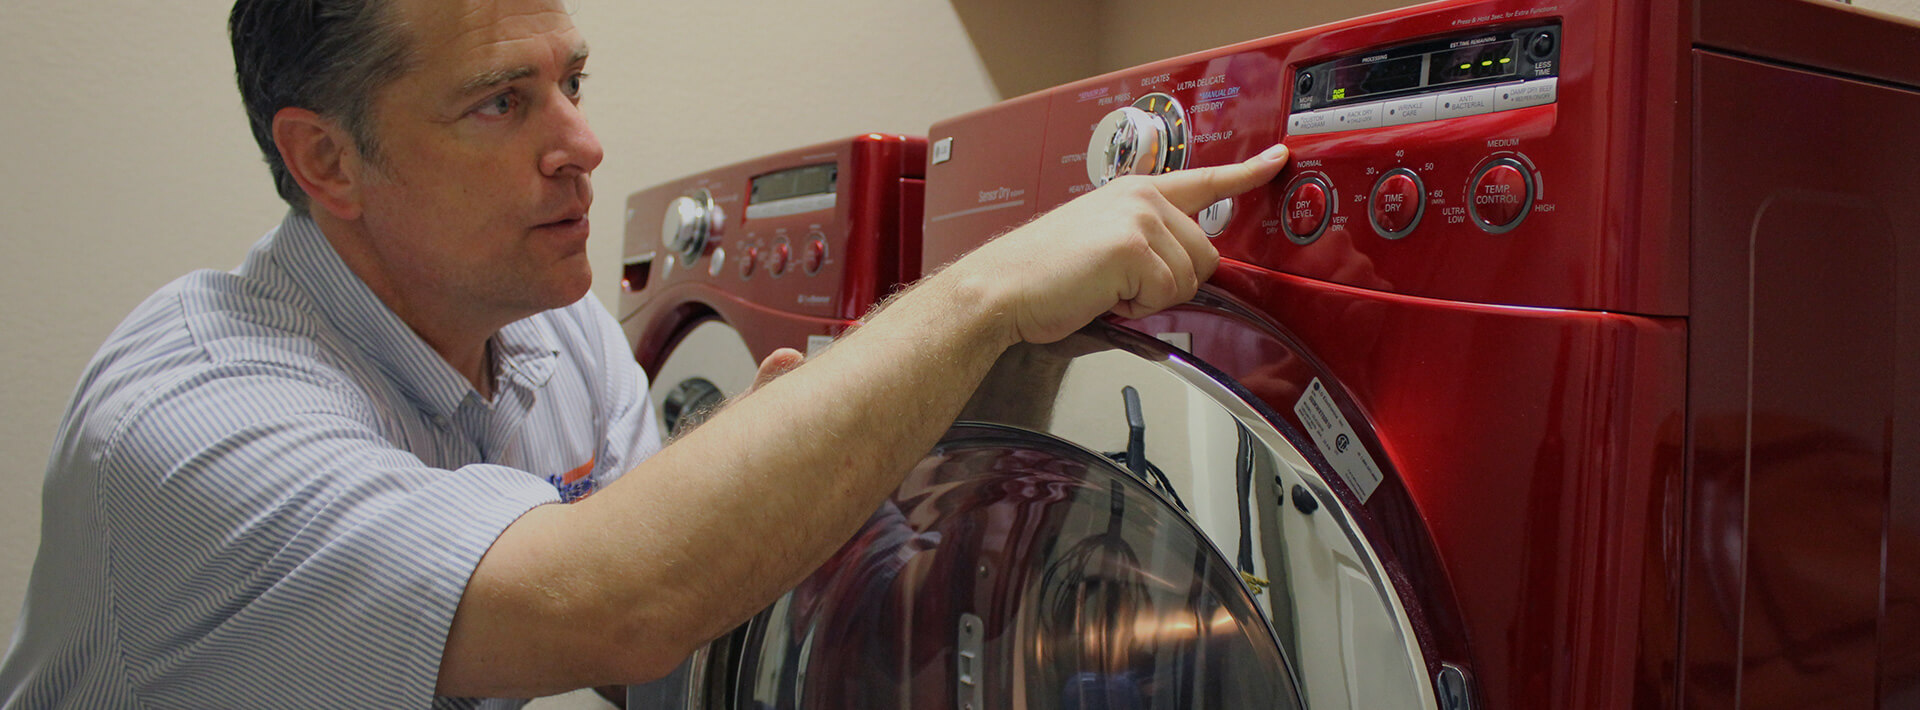 Mr. Appliance tech looking at a dryer